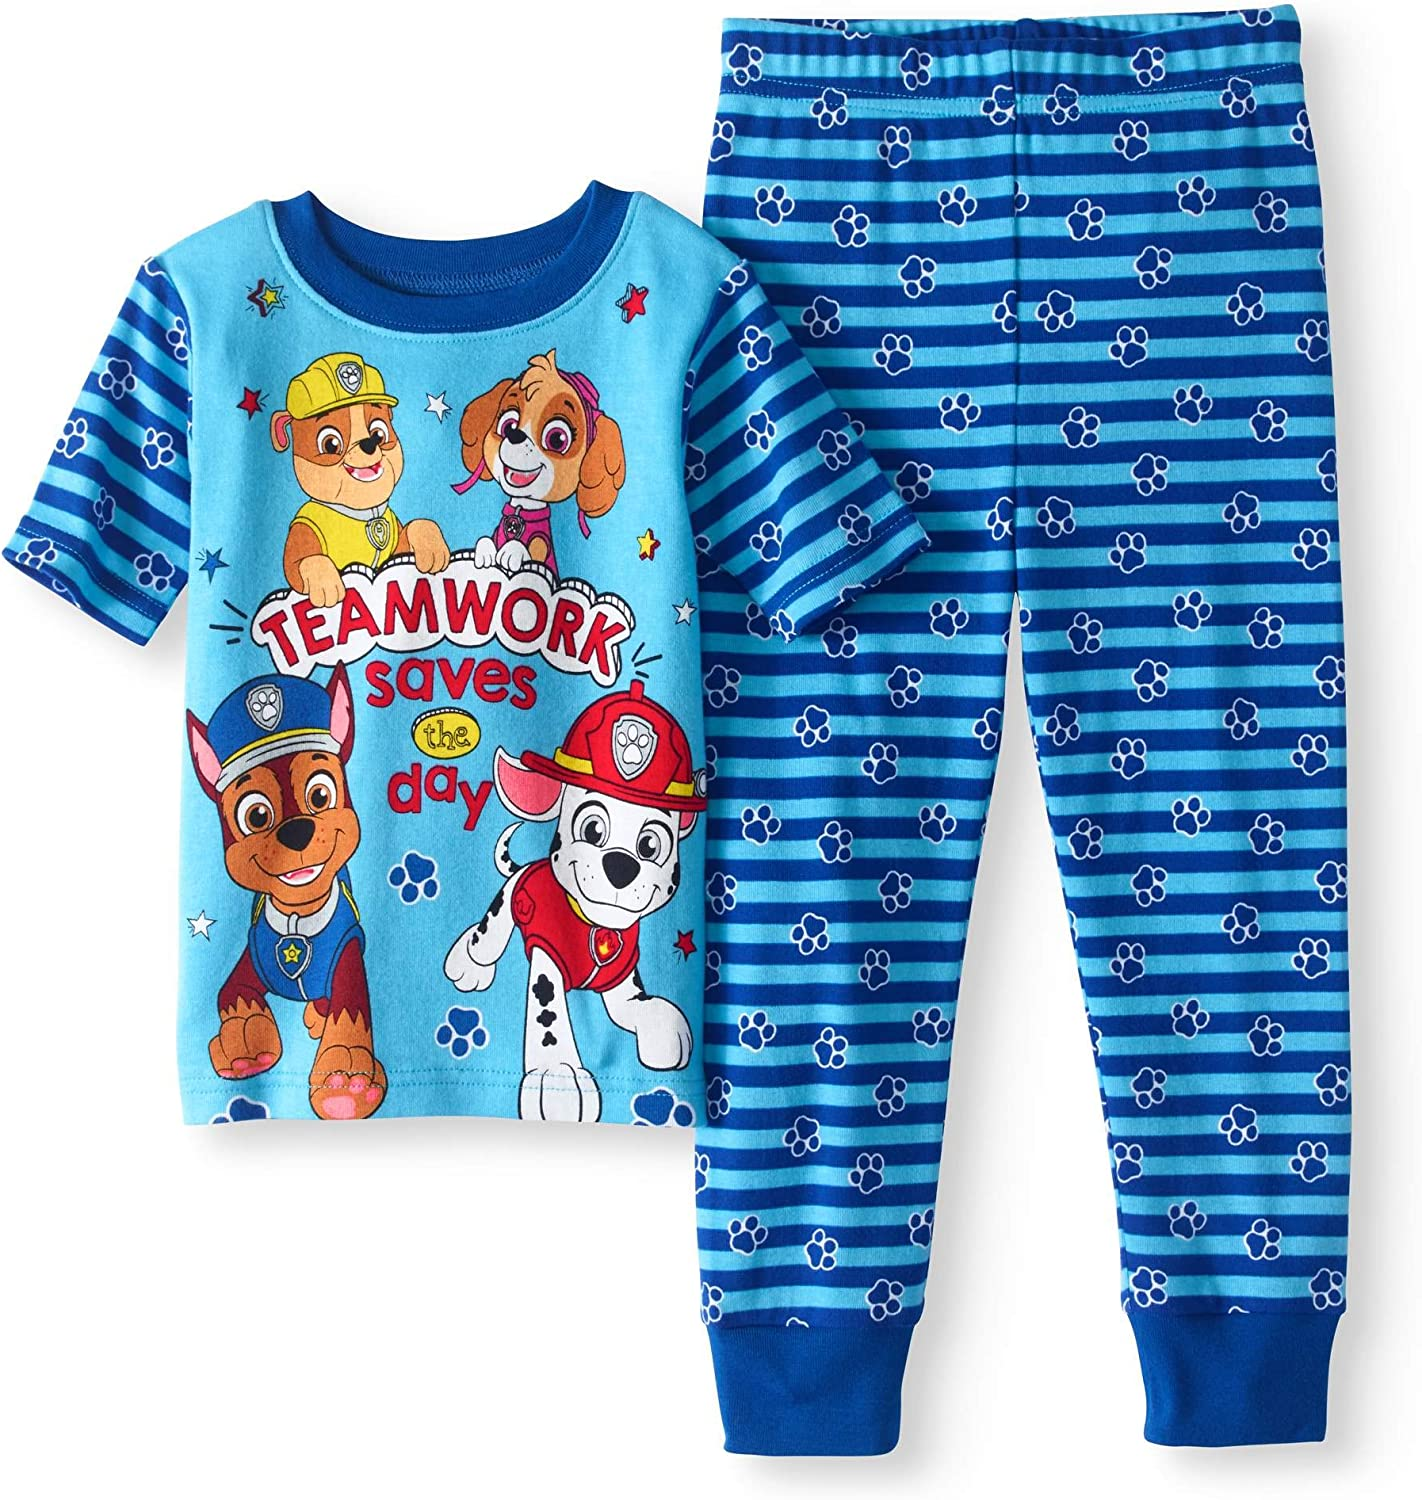 "Paw Patrol snug fit PJs  /""Teamwork saves the day/"""